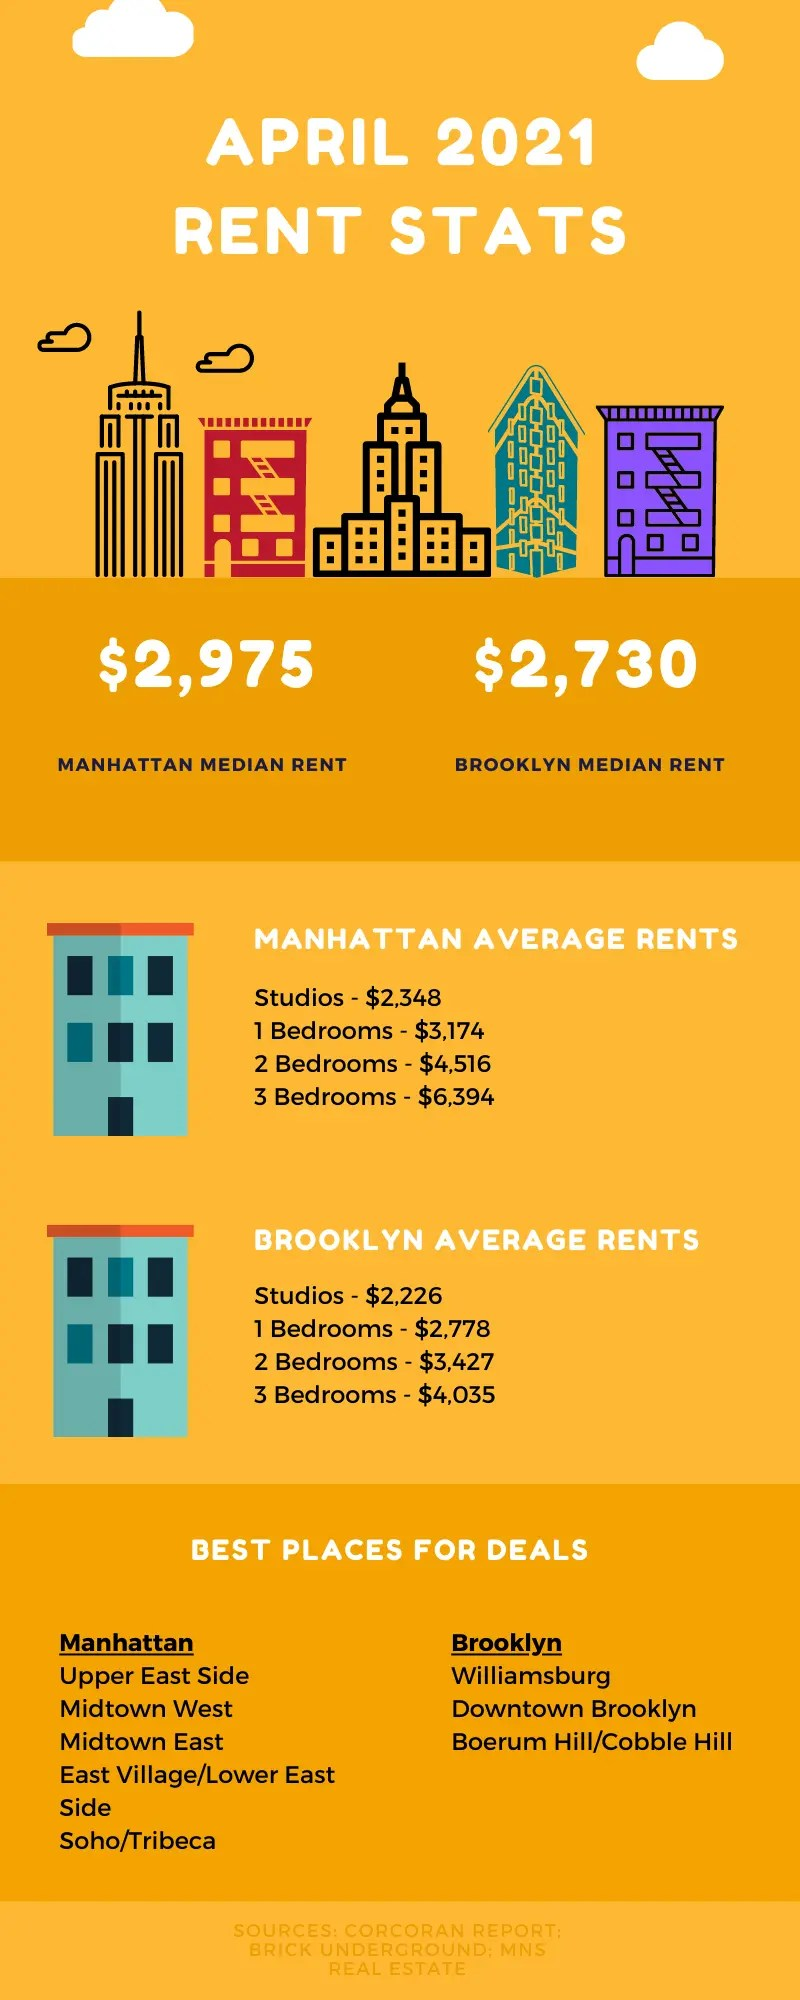 Infographic showing NYC rental market information for March 2021